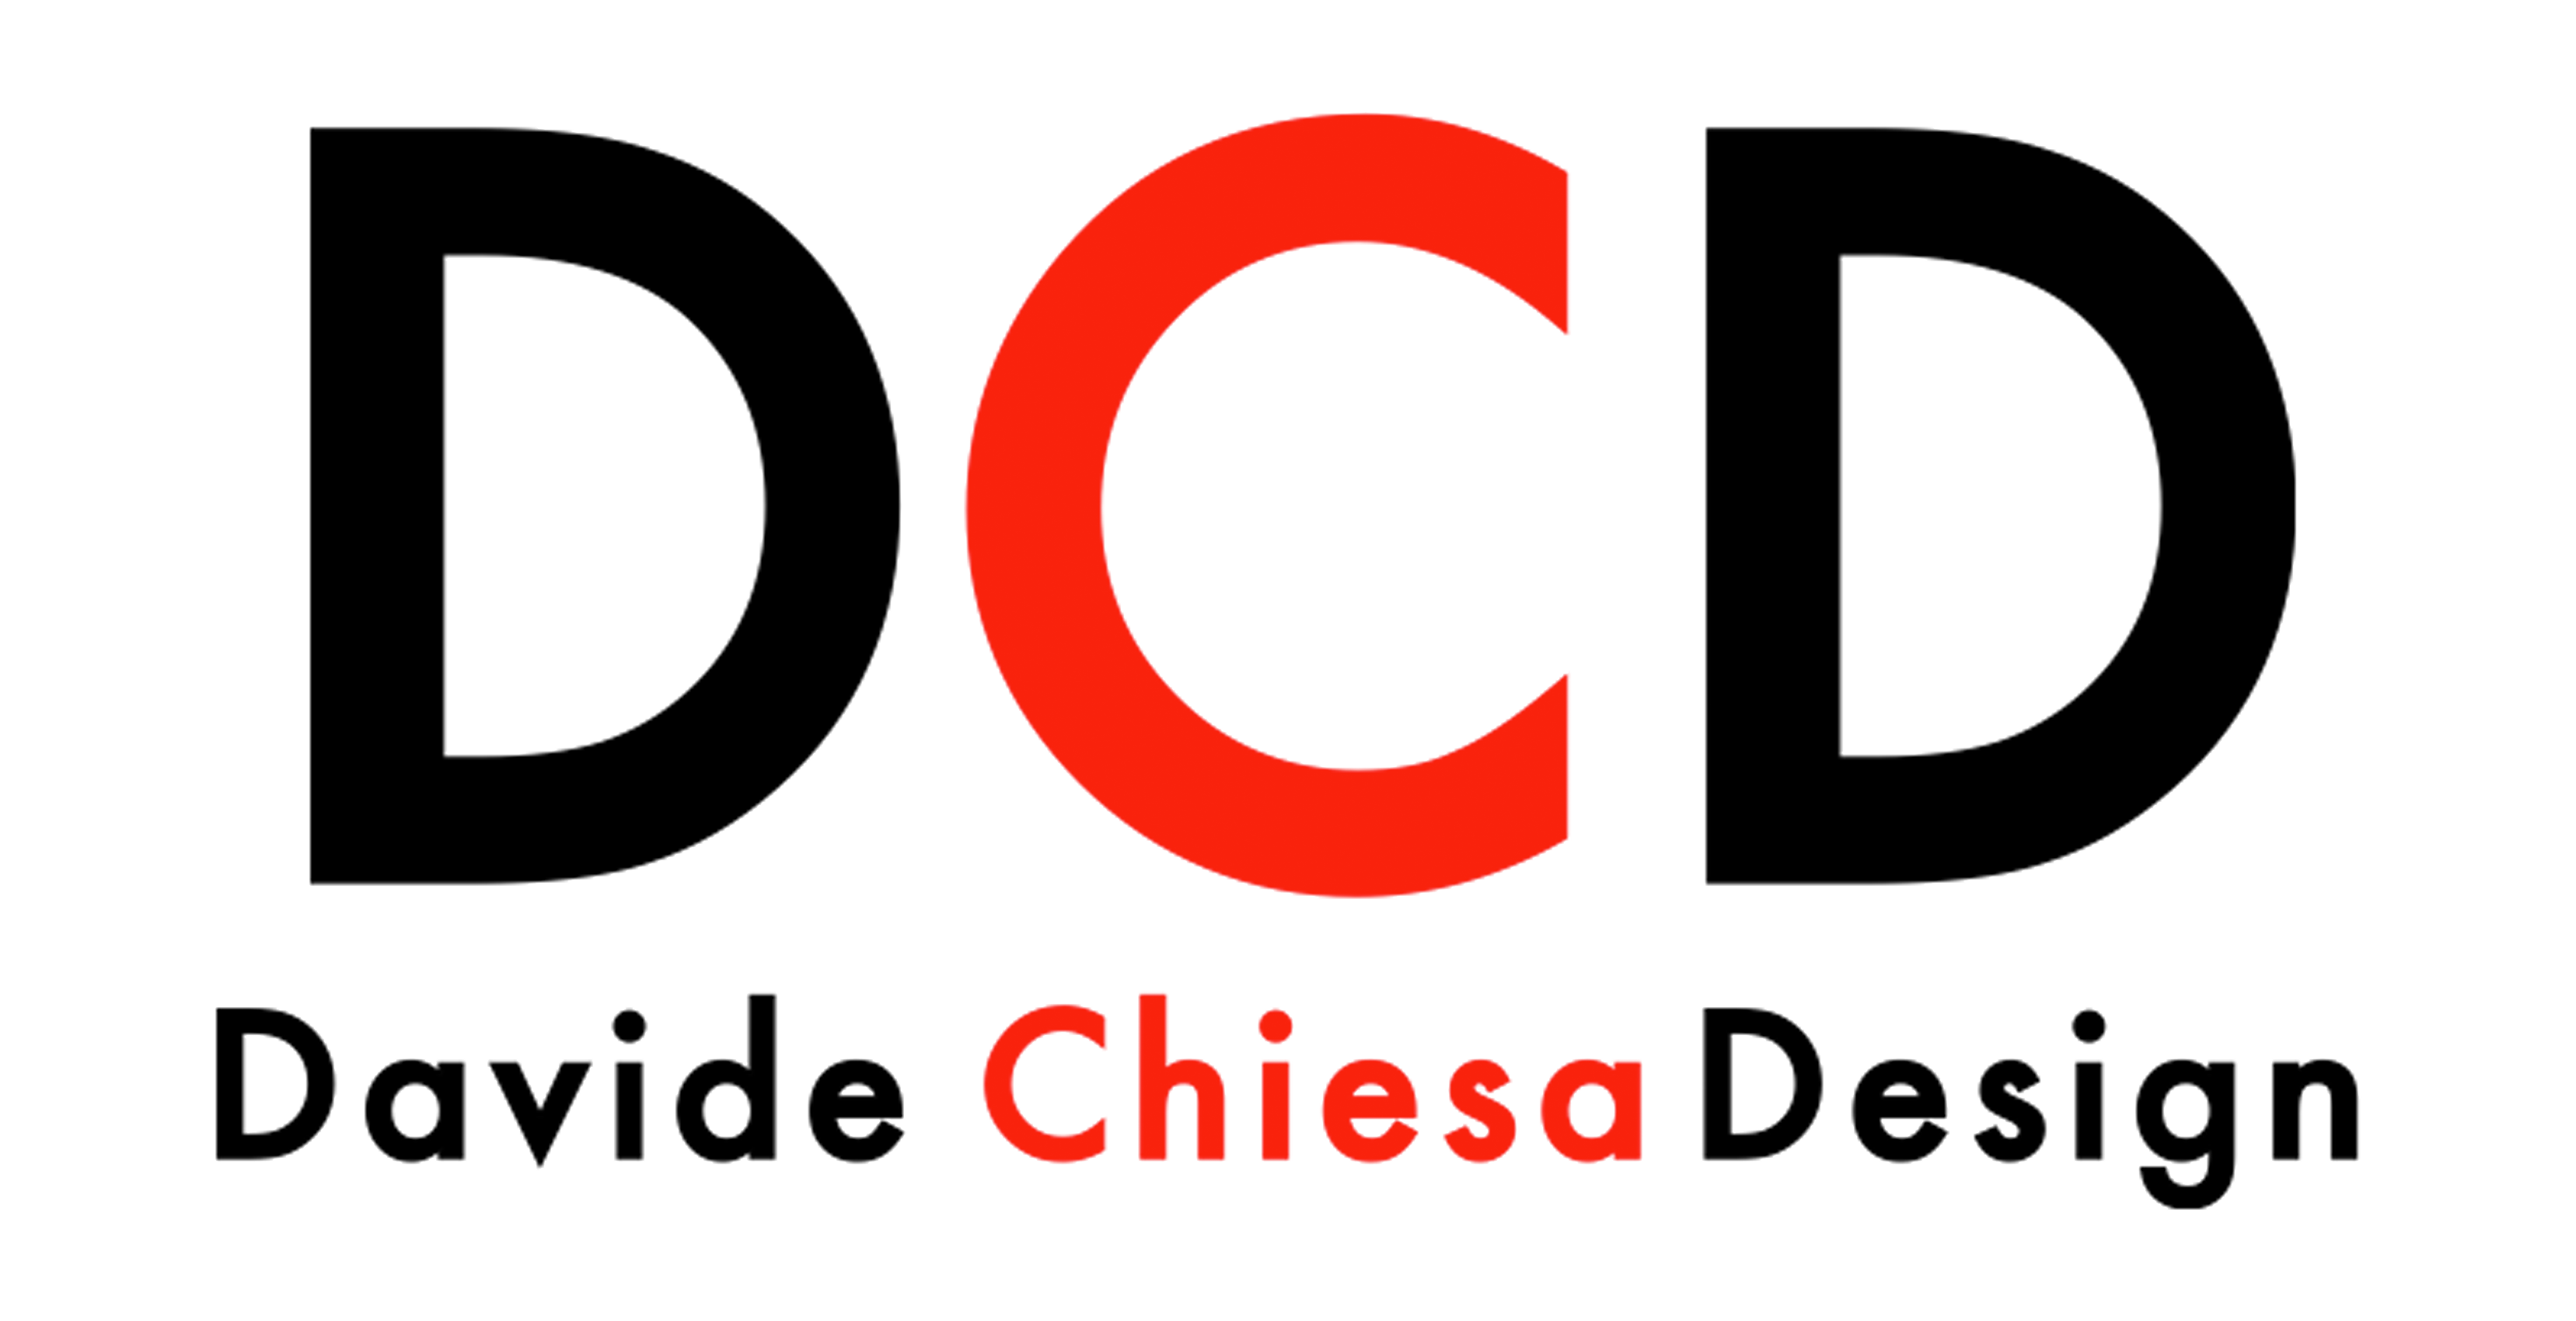 DCD Davide Chiesa Design